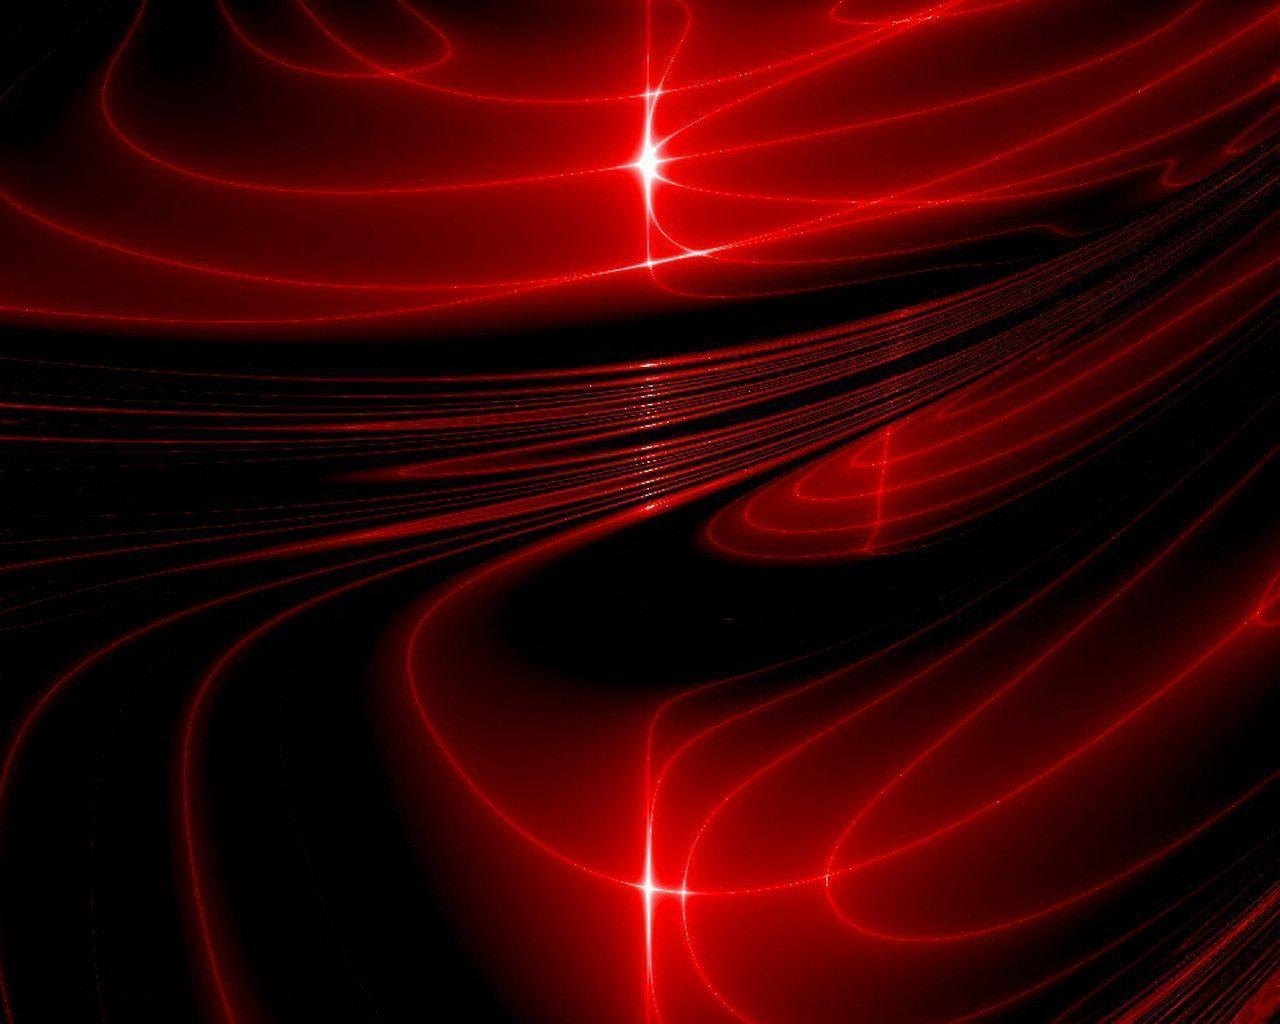 Cool Red Abstract Wallpapers photos of beautiful red abstract